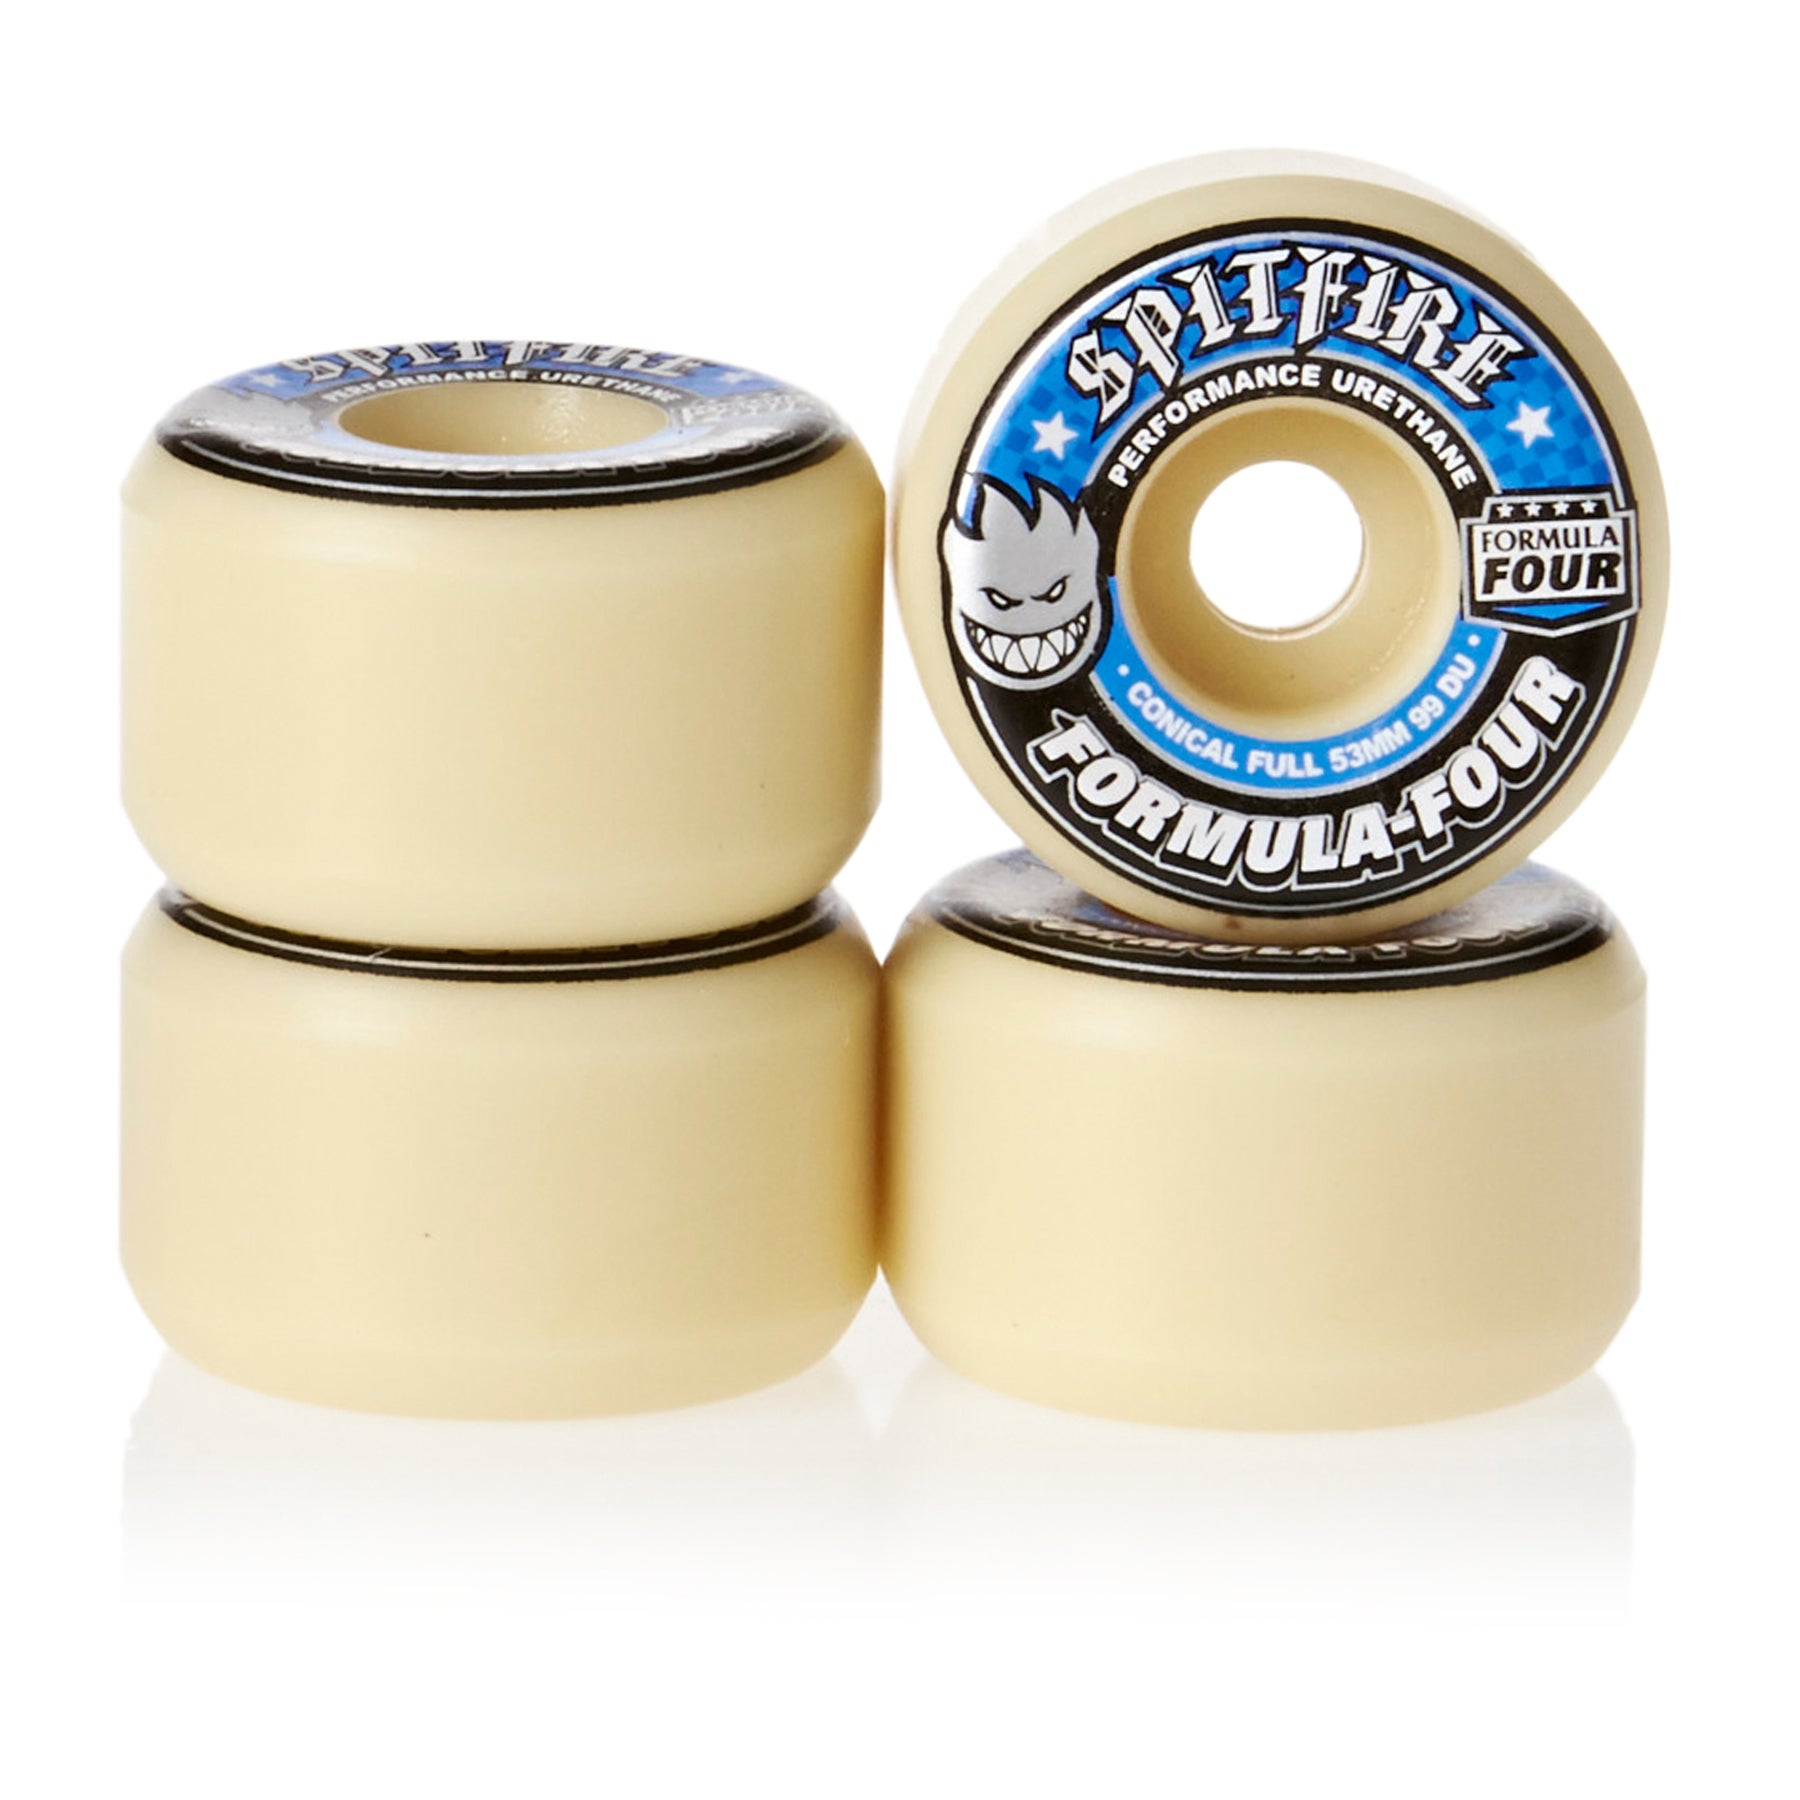 Spitfire Formula Four Wheels Conical 99DU Natural 53mm Skateboard Wheel - White